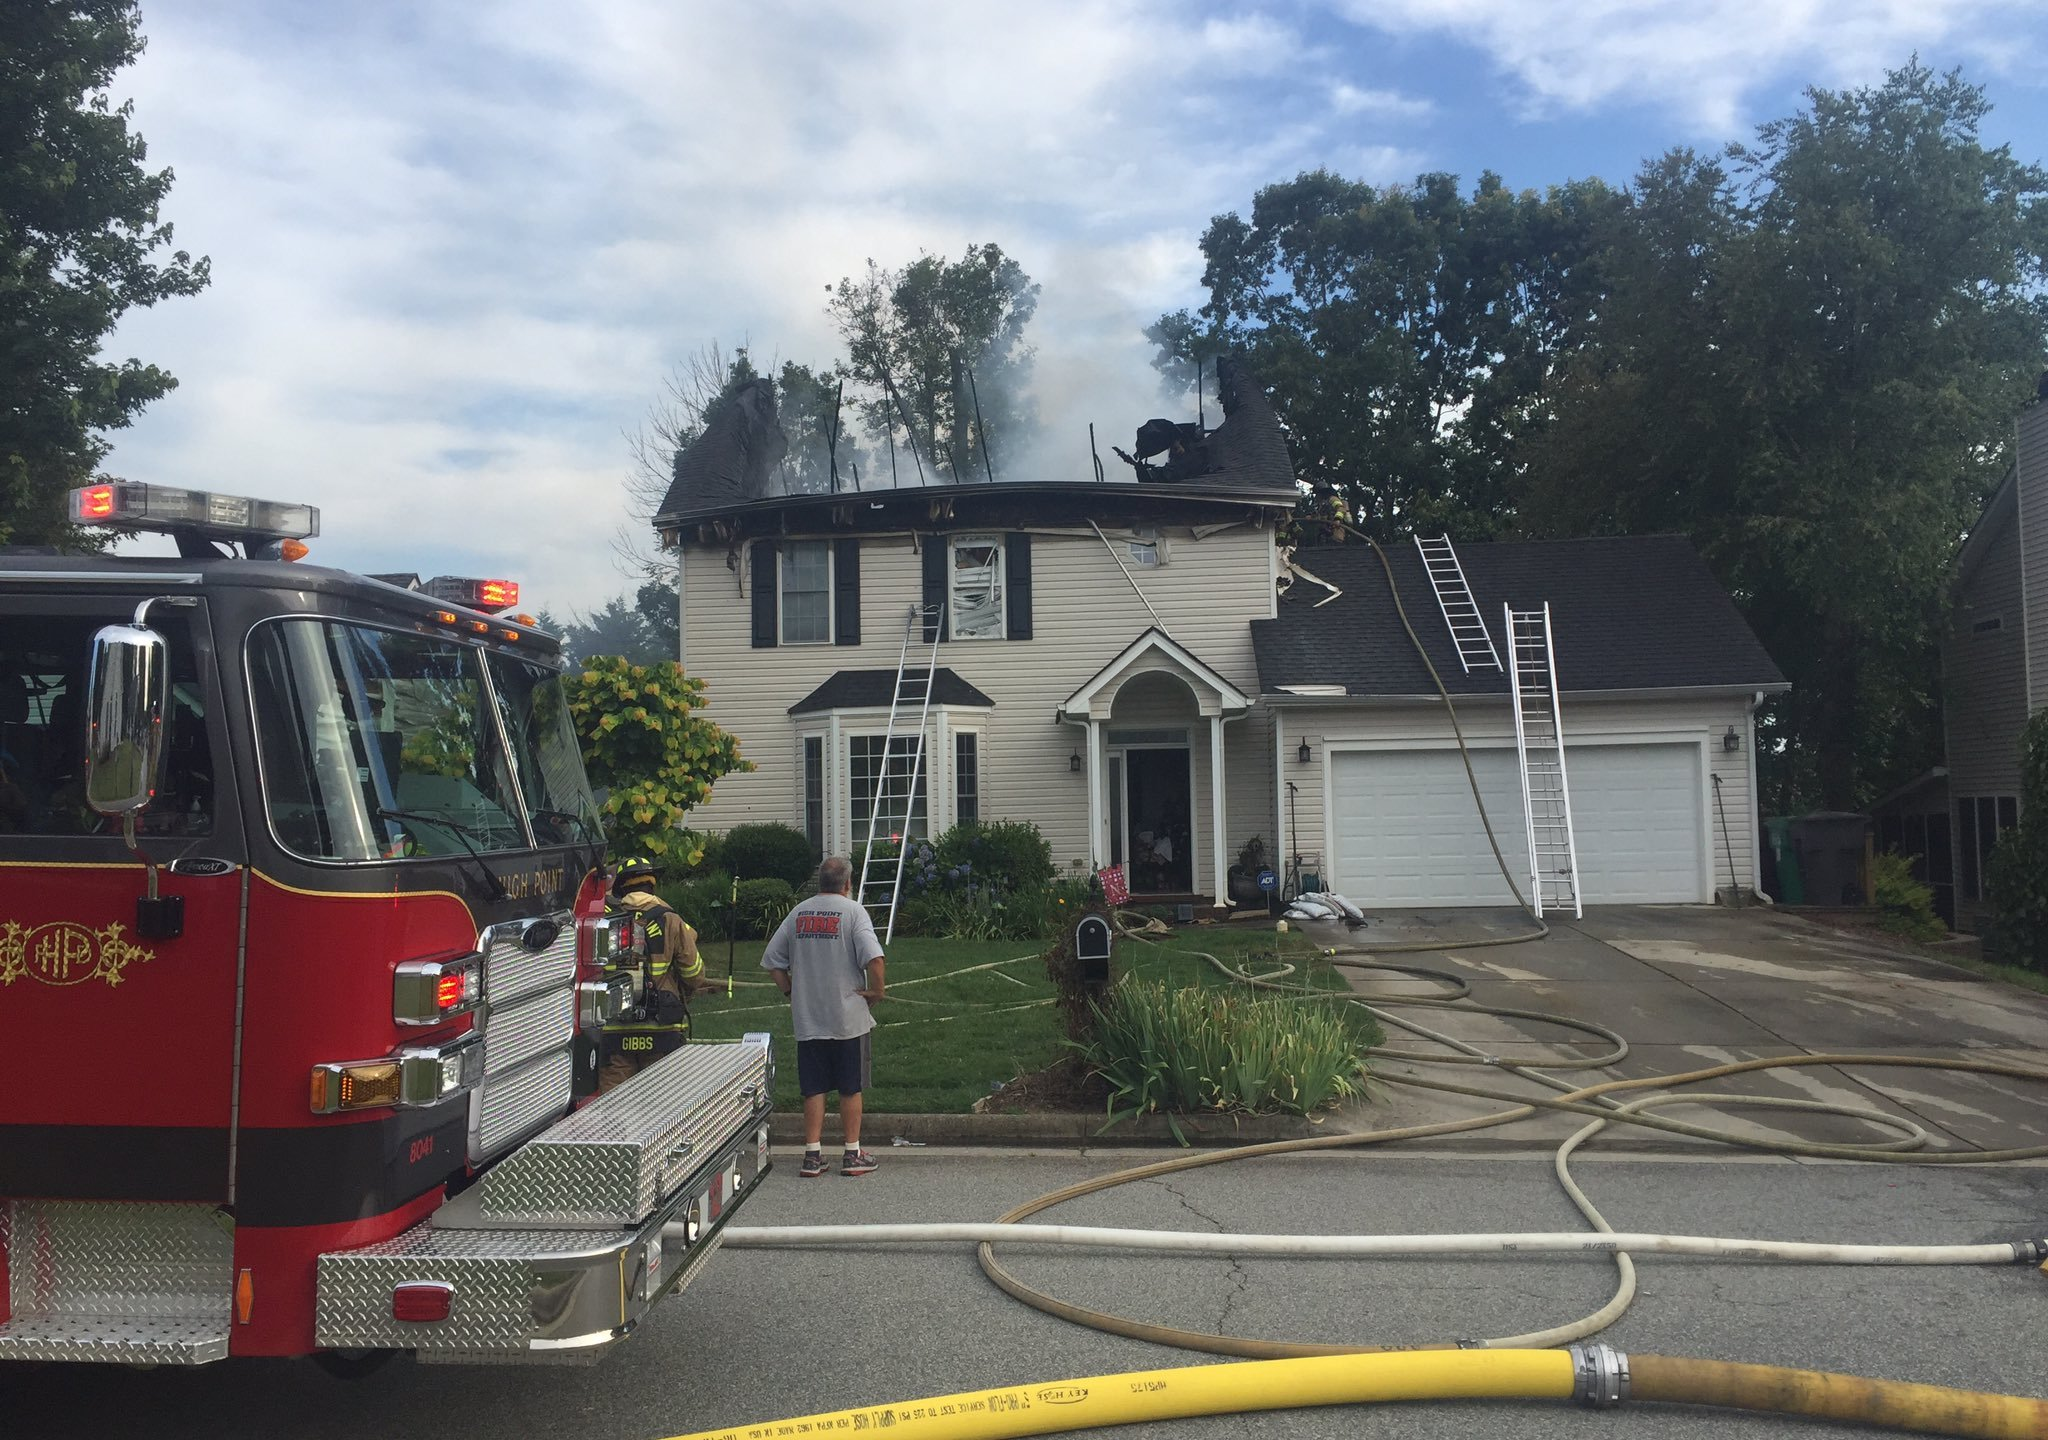 High Point firefighters working to put out fire